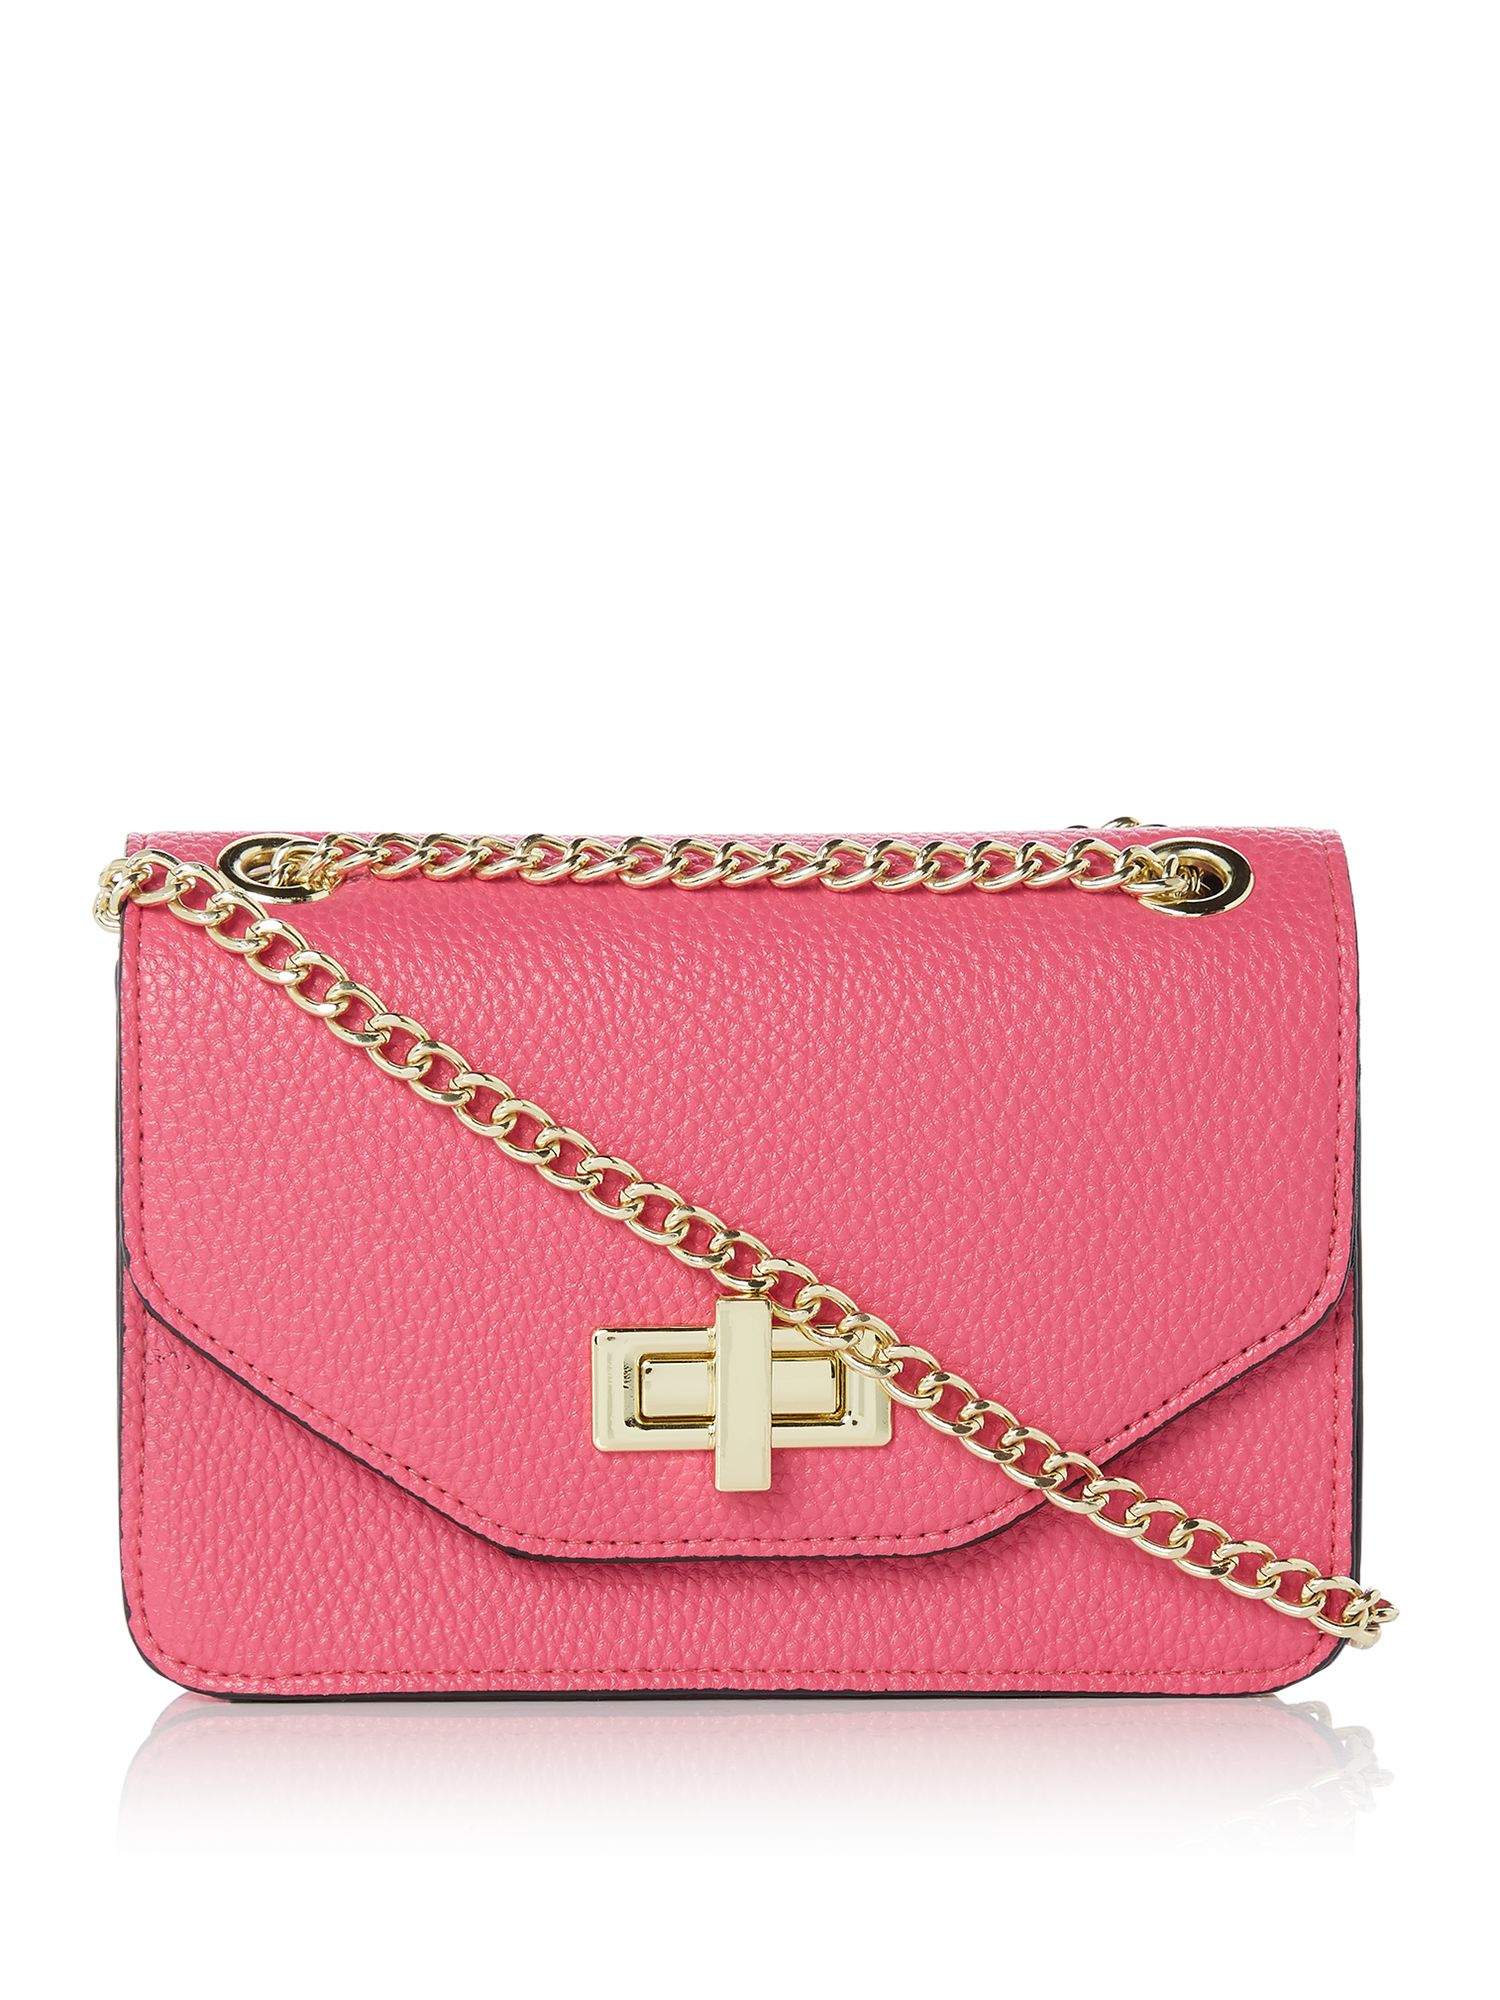 Therapy Bailey cross body bag, Pink